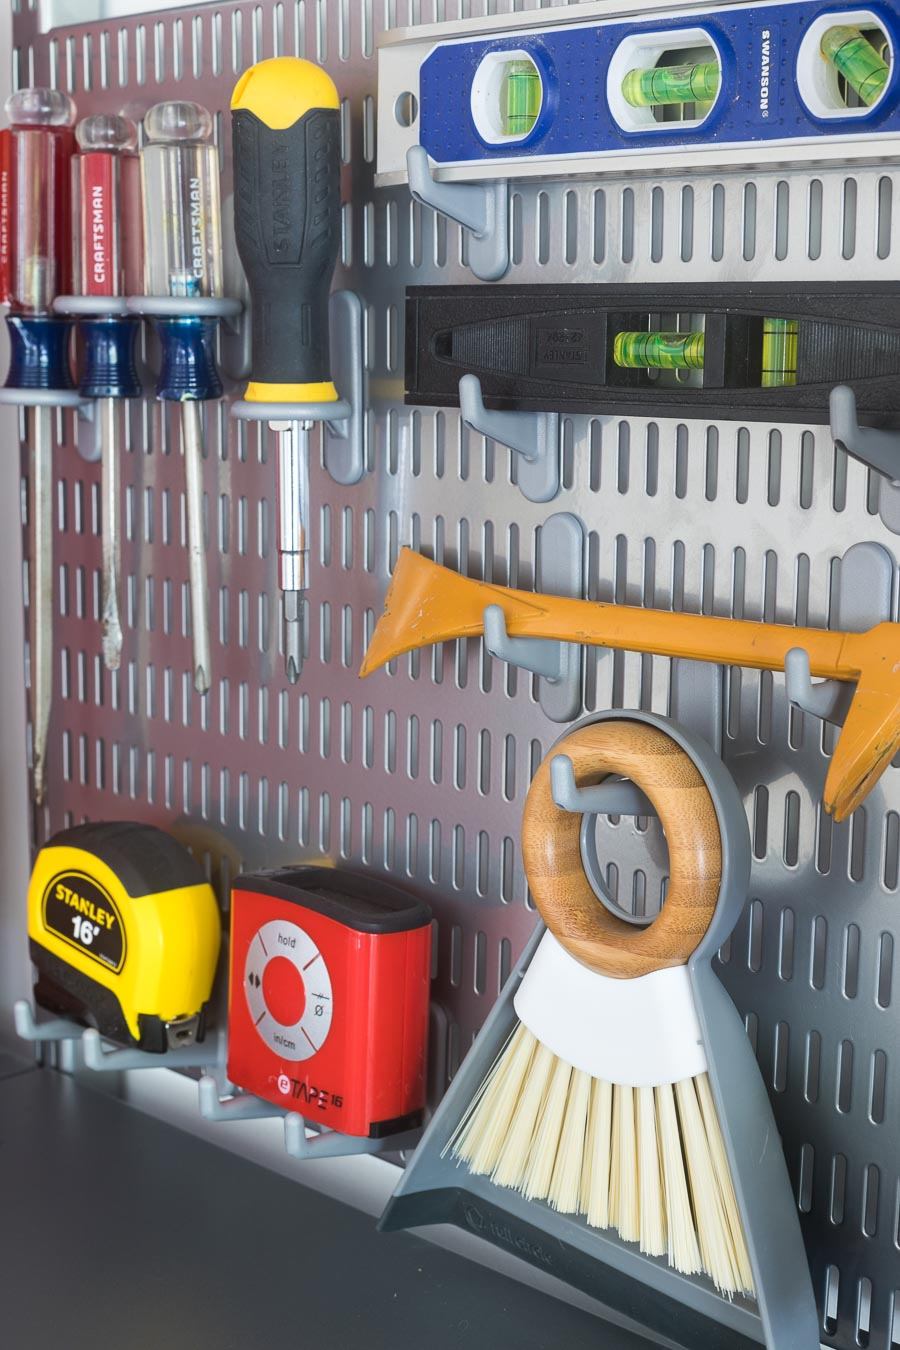 The smartest was to organize your most-used tools! She used Elfa utility boards with different types of board hooks to hold screwdrivers, levels, and more!